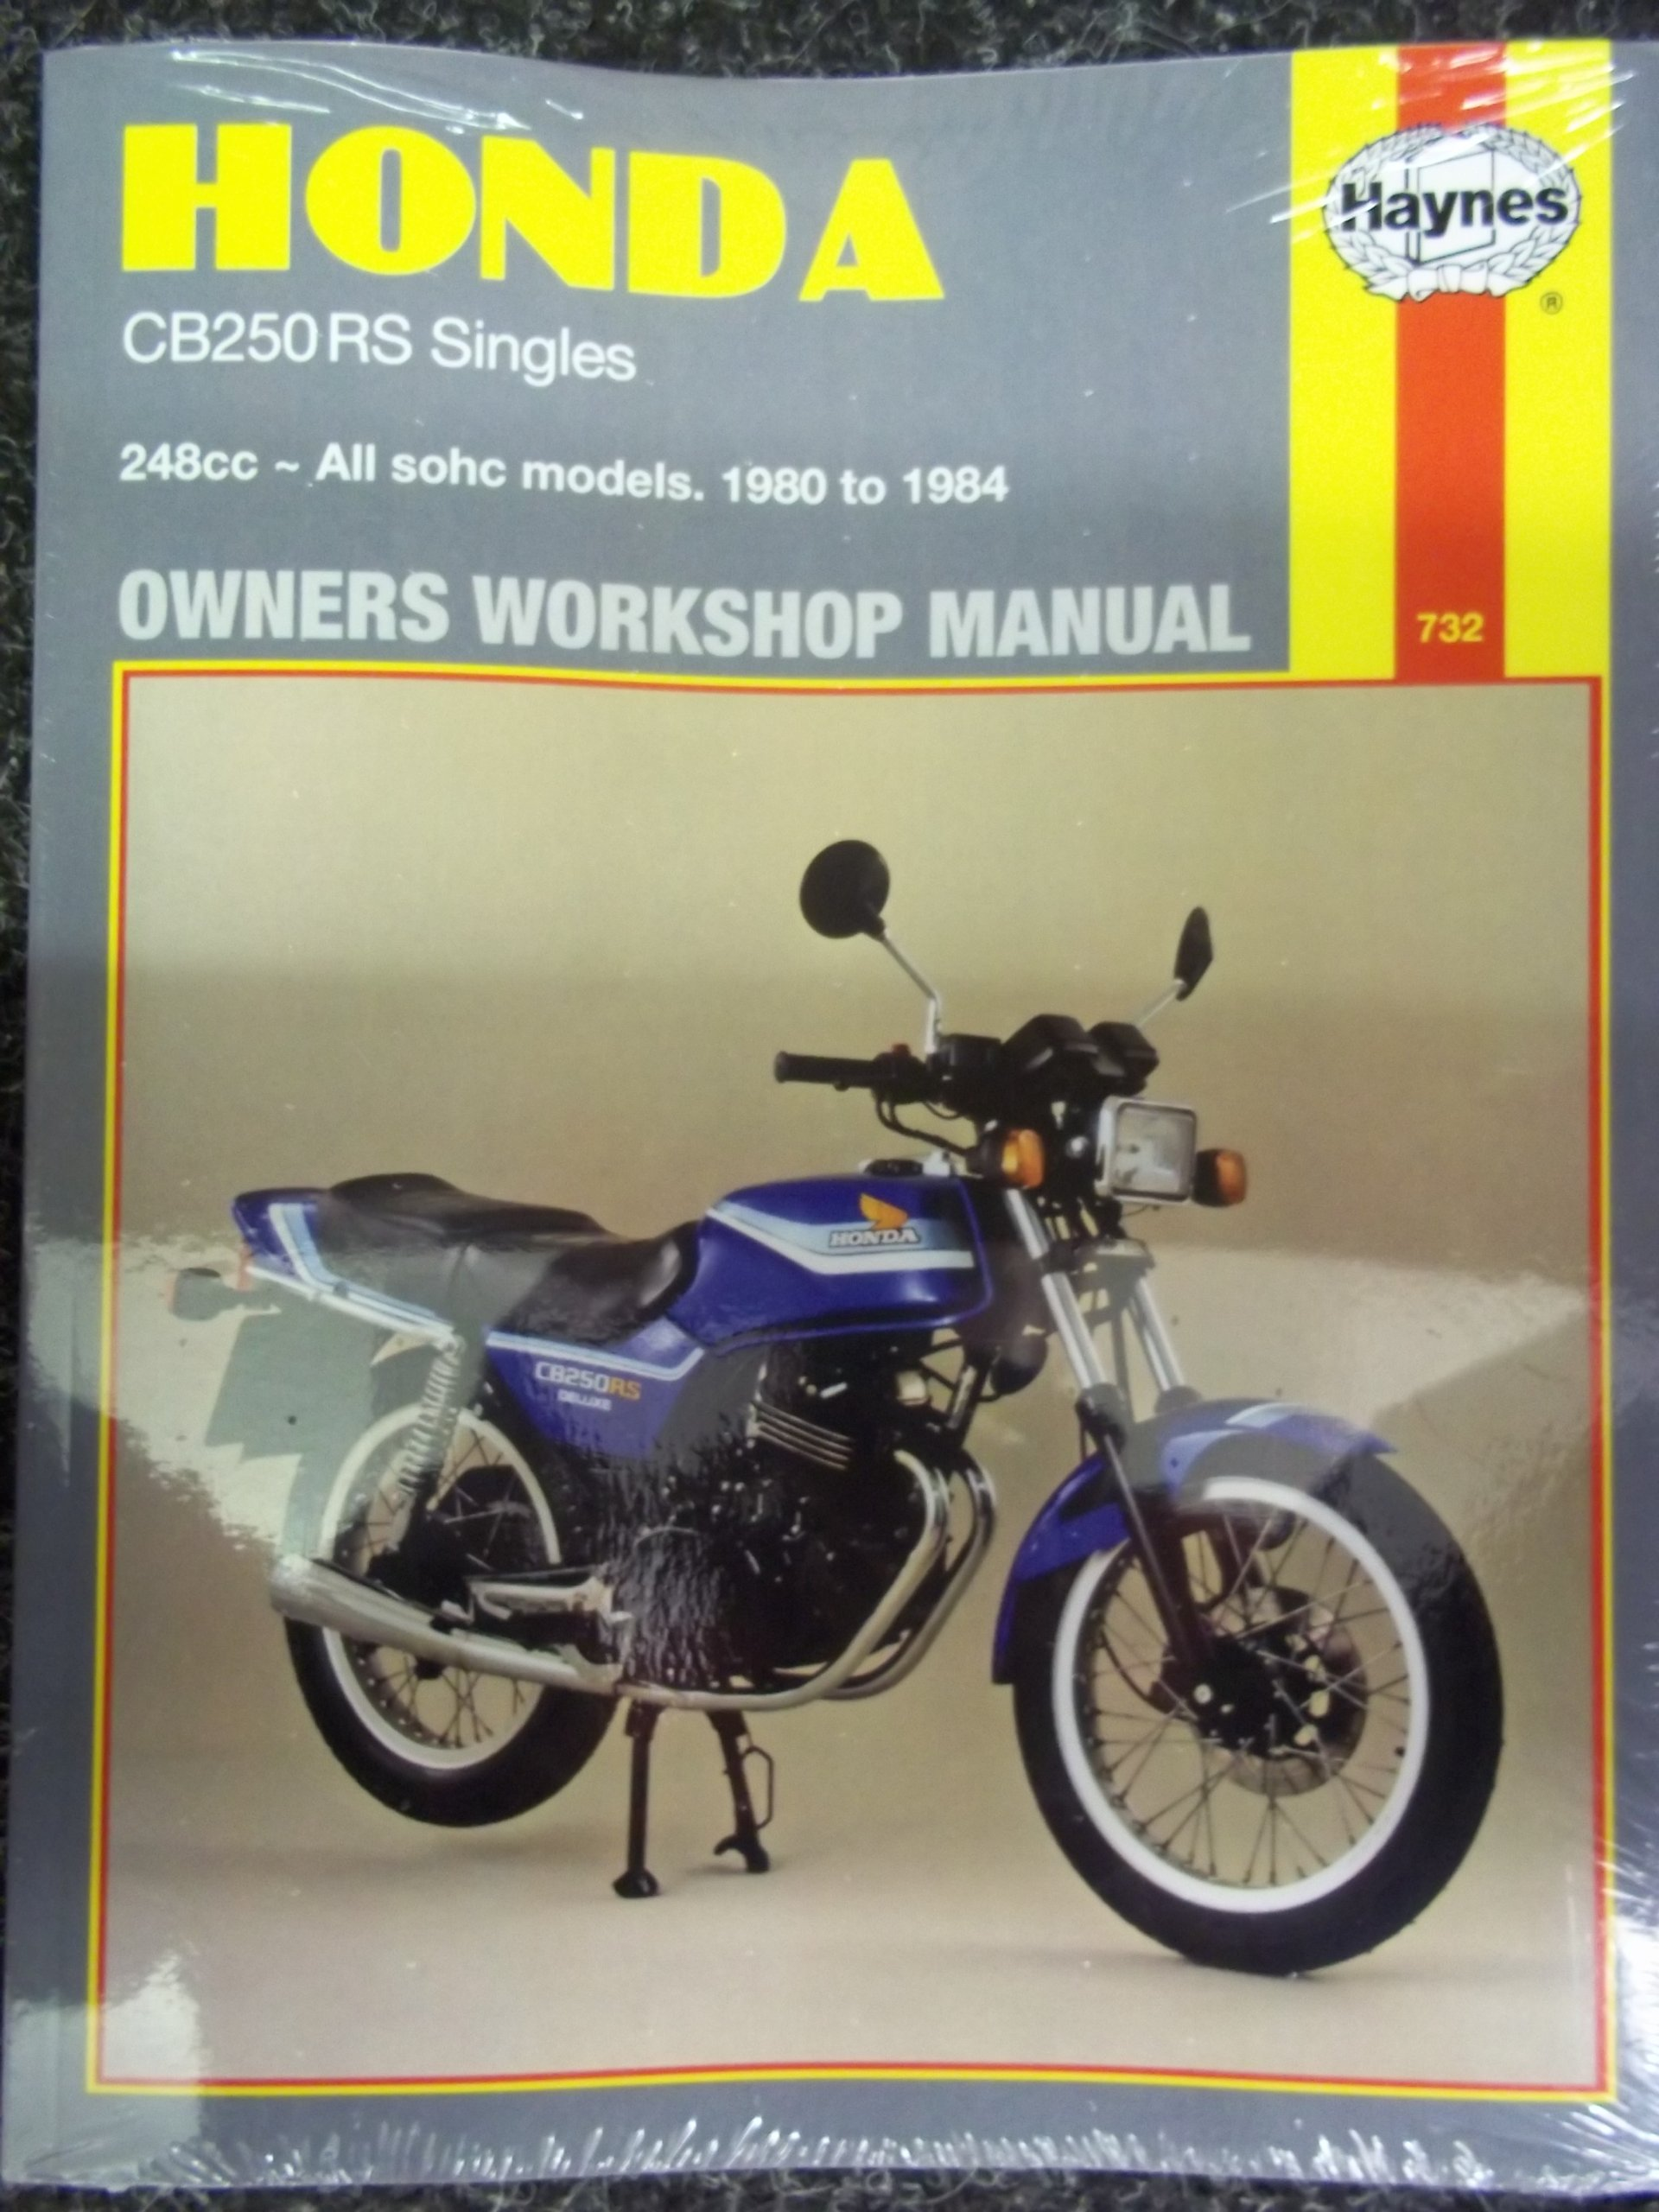 honda cb250rs singles motorcycle manuals amazon co uk haynes rh amazon co uk Honda CB 150 Honda CB 150